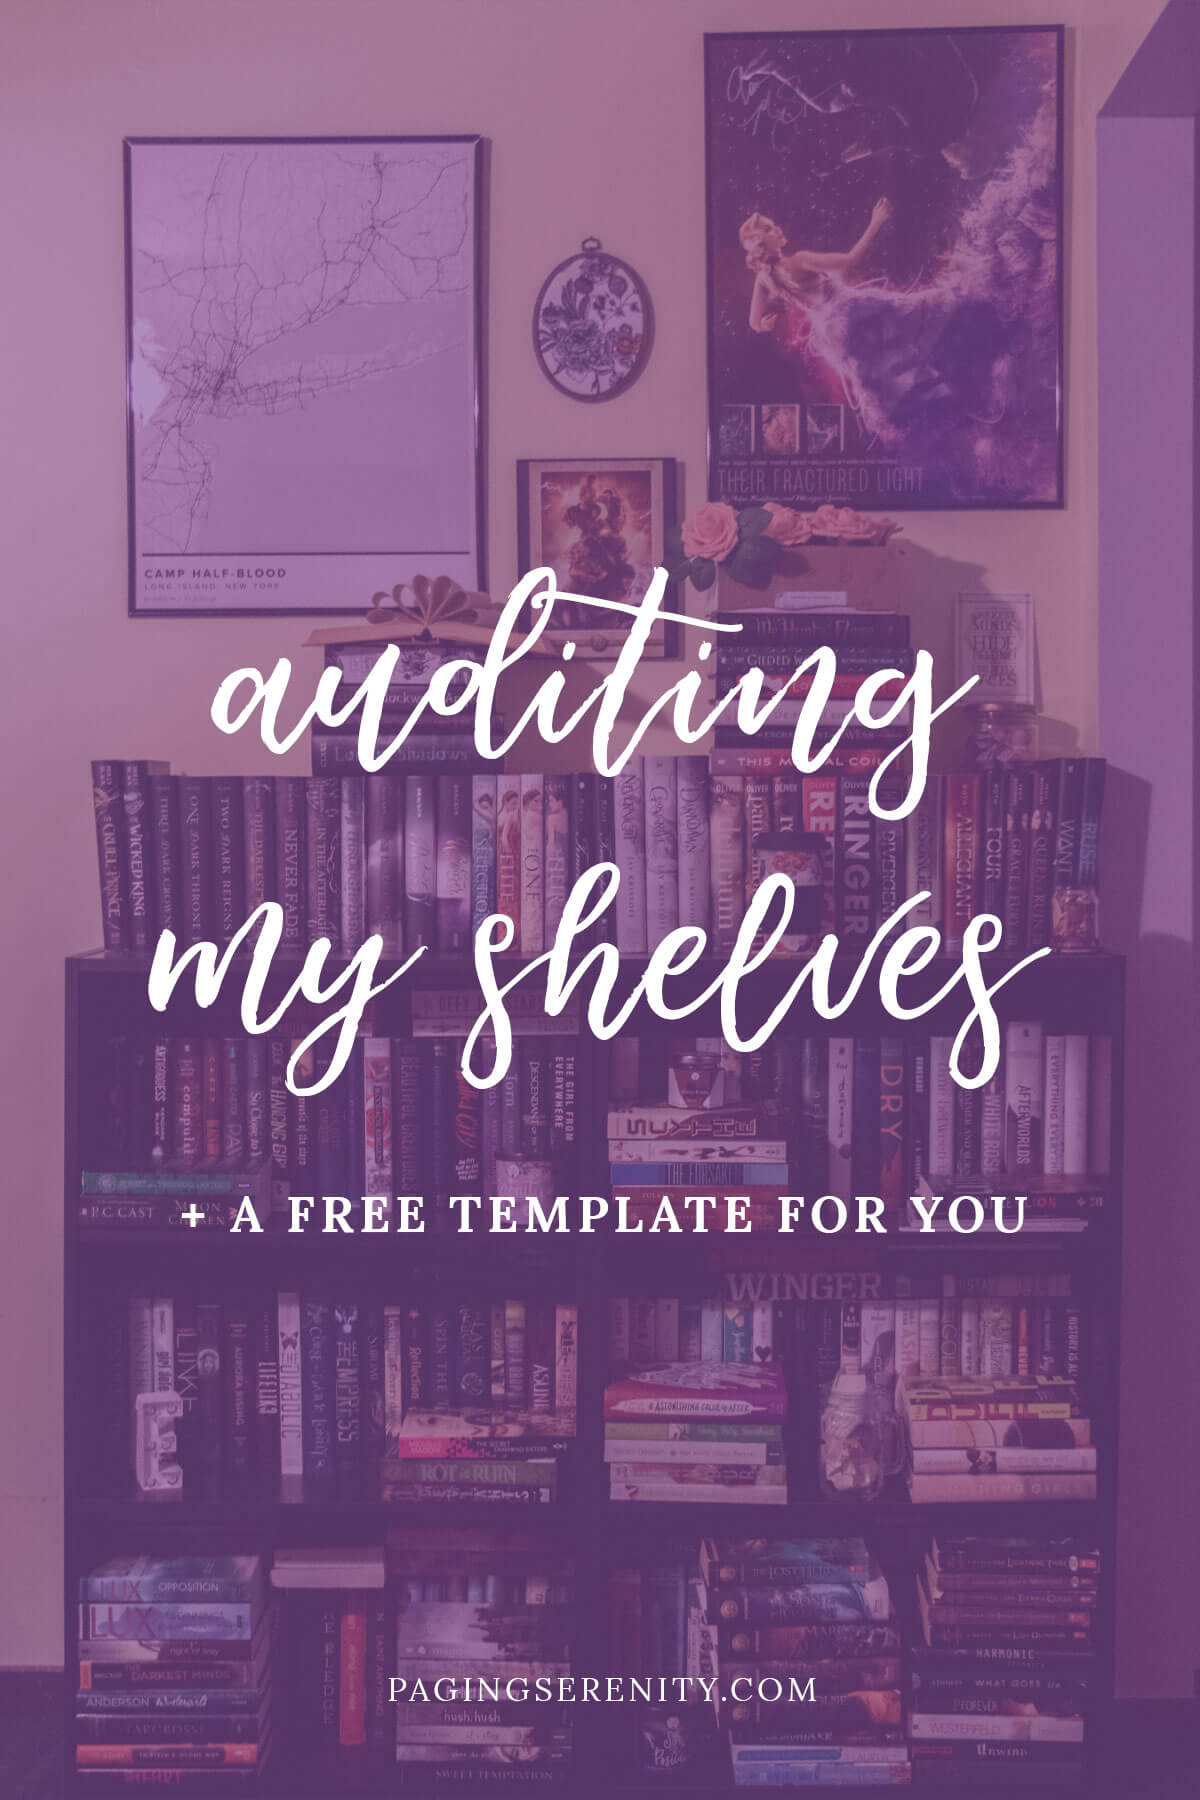 auditing my shelves + a free template for you